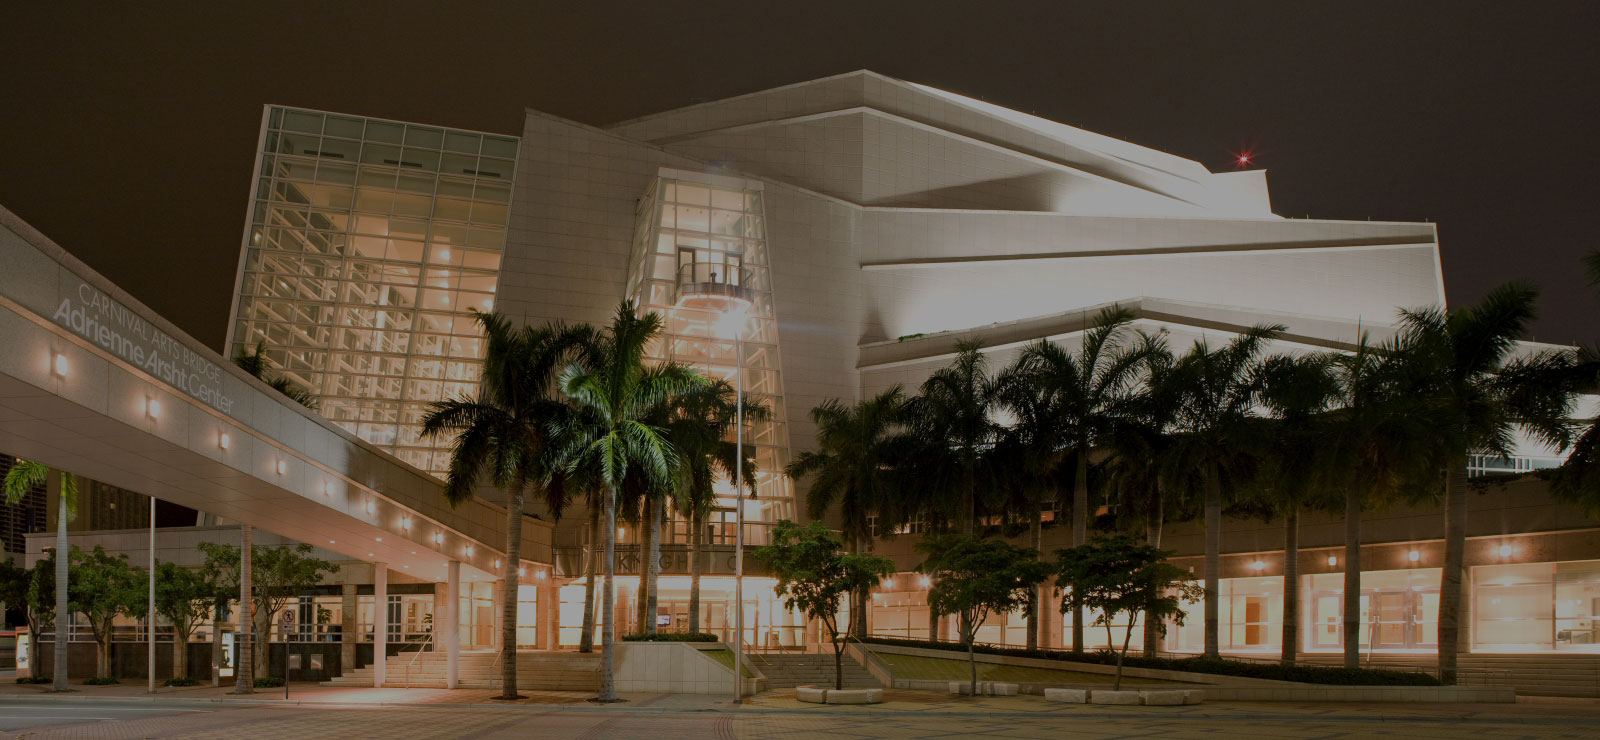 Nonprofit management and leadership case study with Adrienne Arsht Center for the Performing Arts